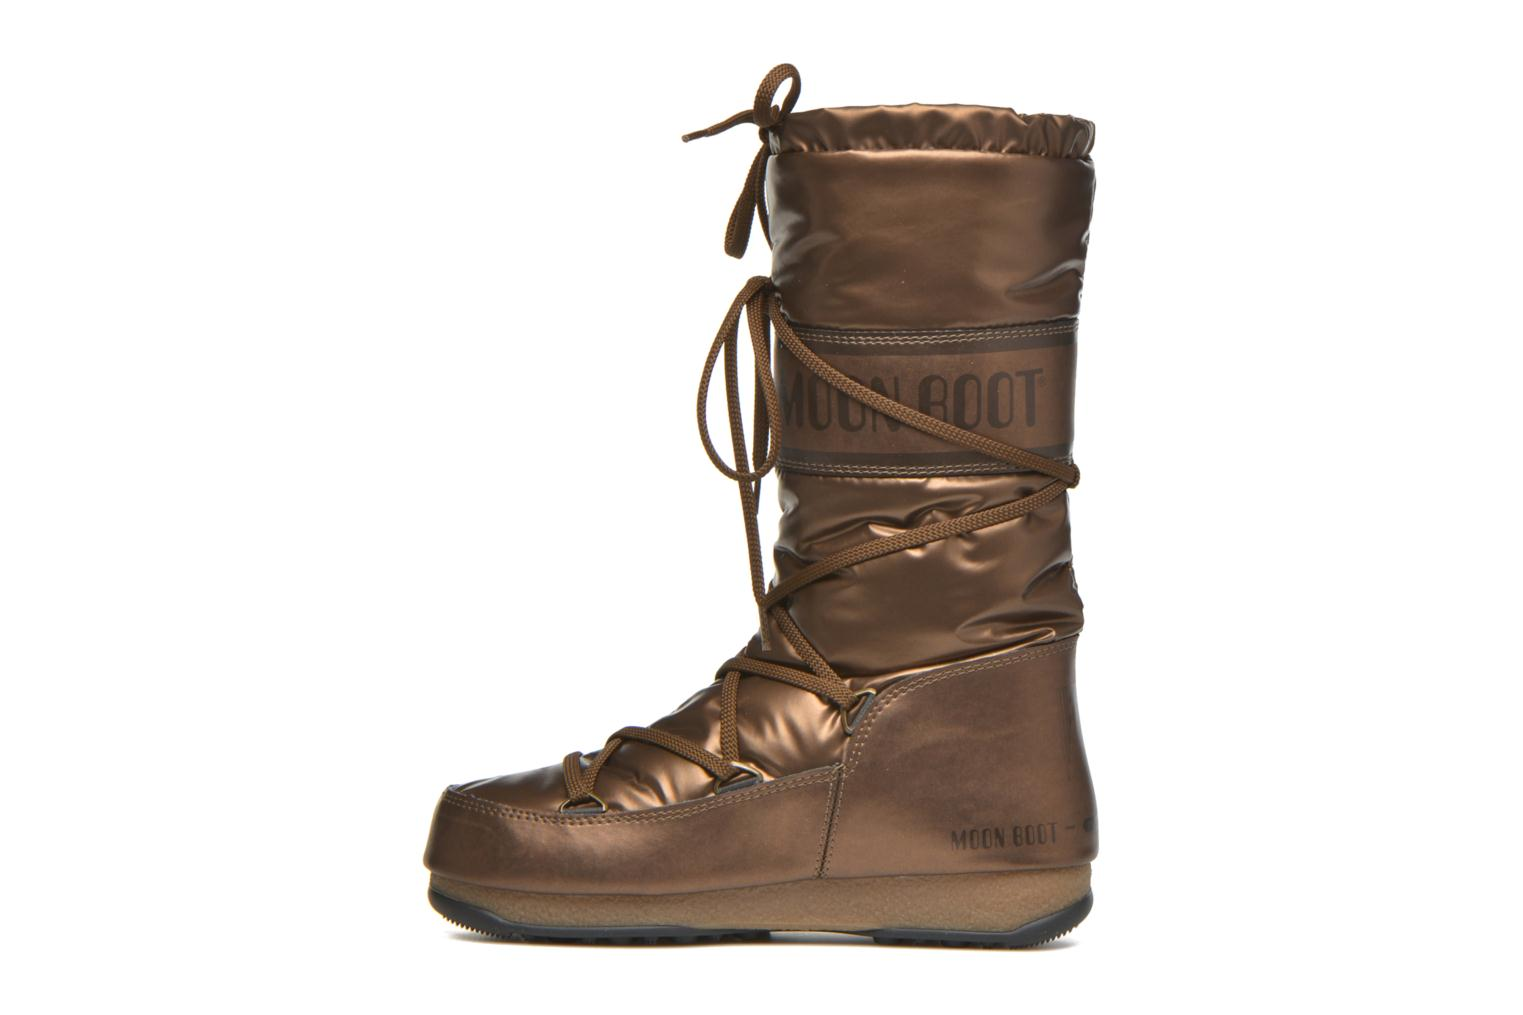 Botas Moon Boot Soft Met Oro y bronce vista de frente